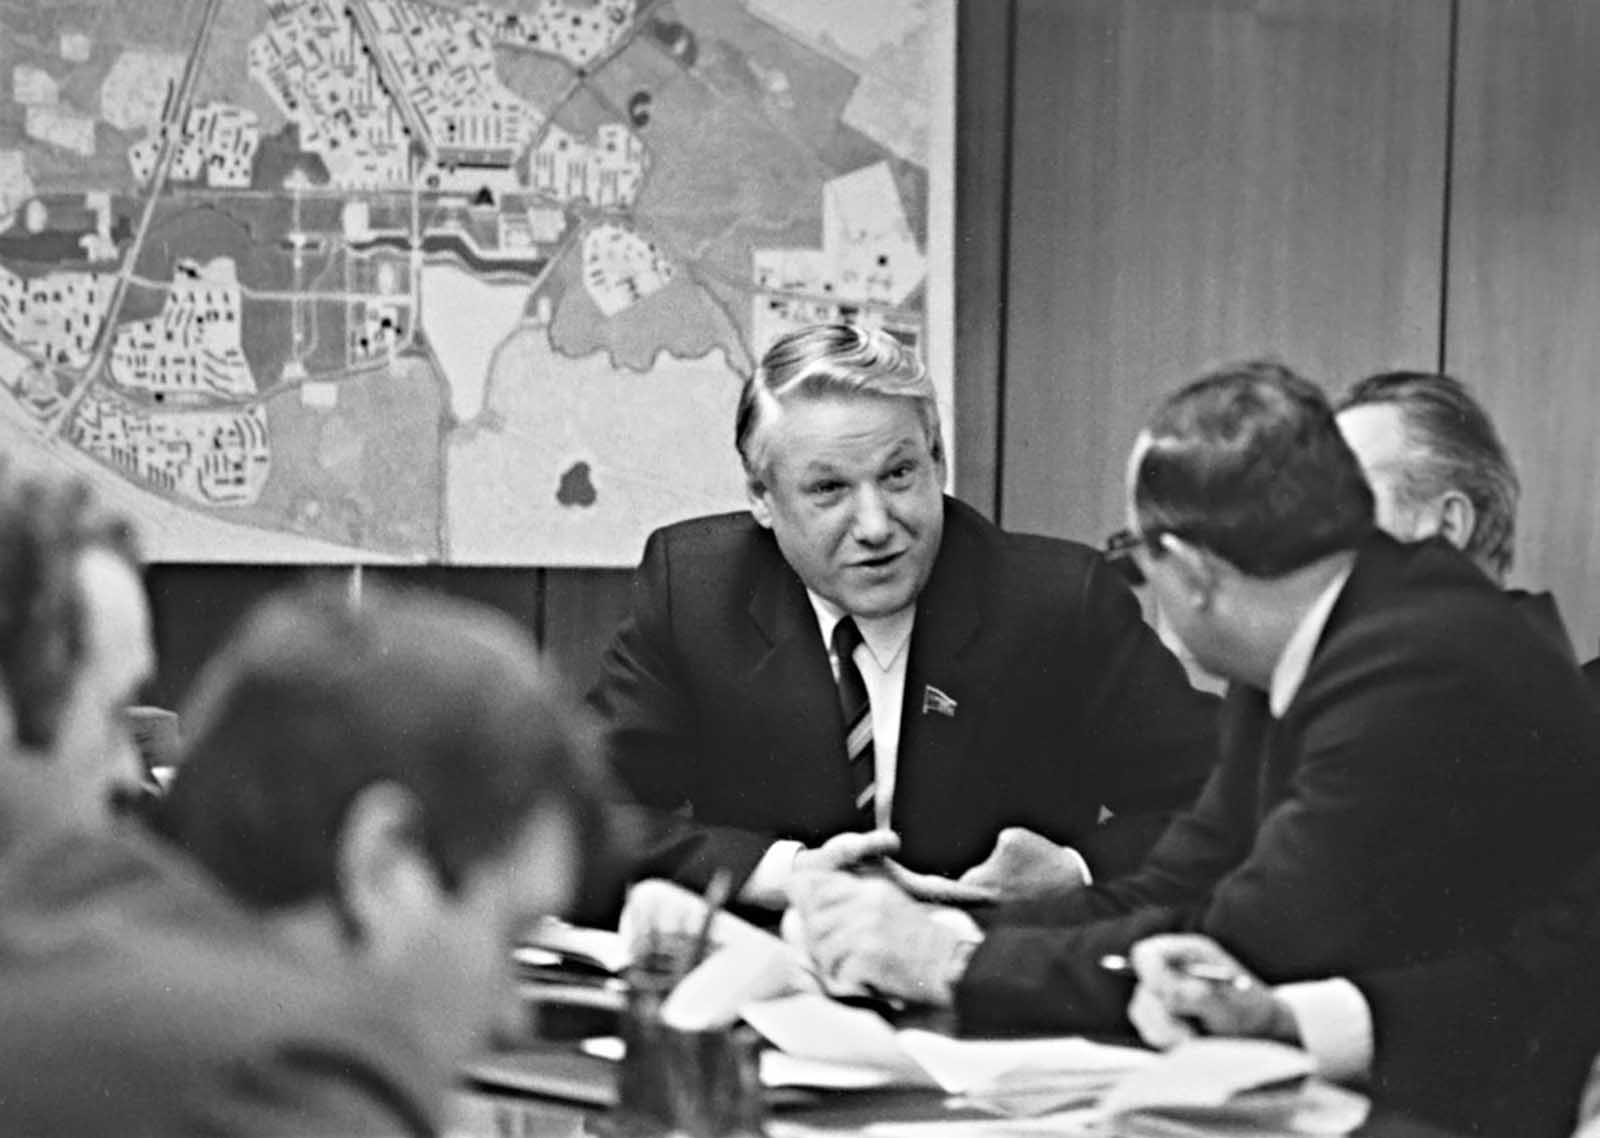 Yeltsin in Sverdlovsk discusses the city development projects.